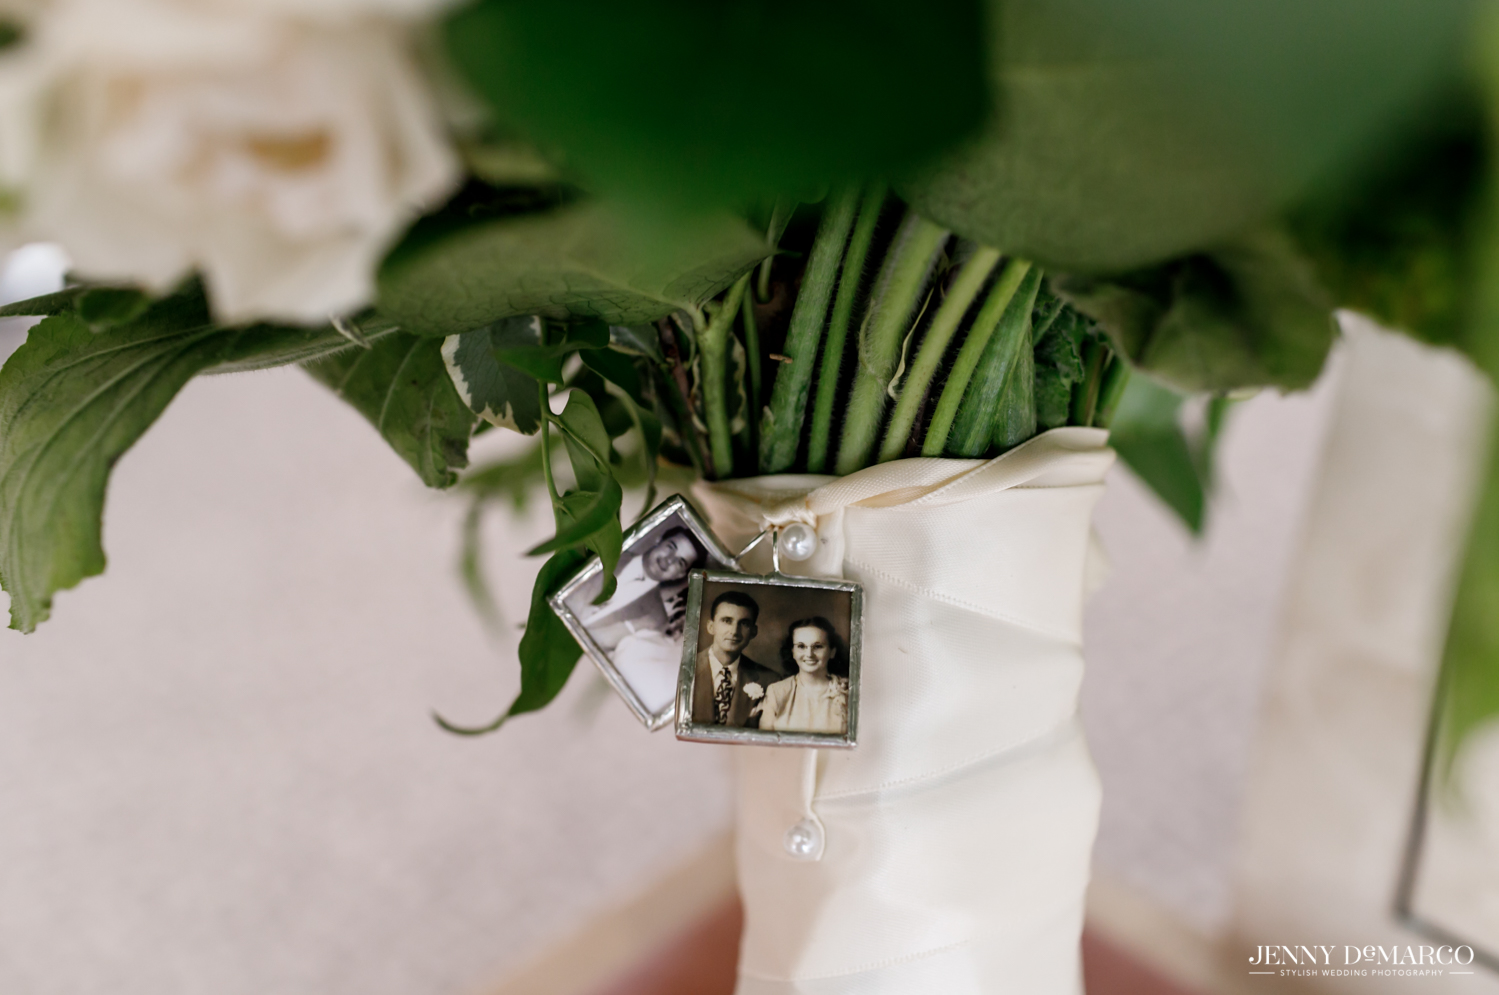 photos of relatives attached to the bridal bouquet